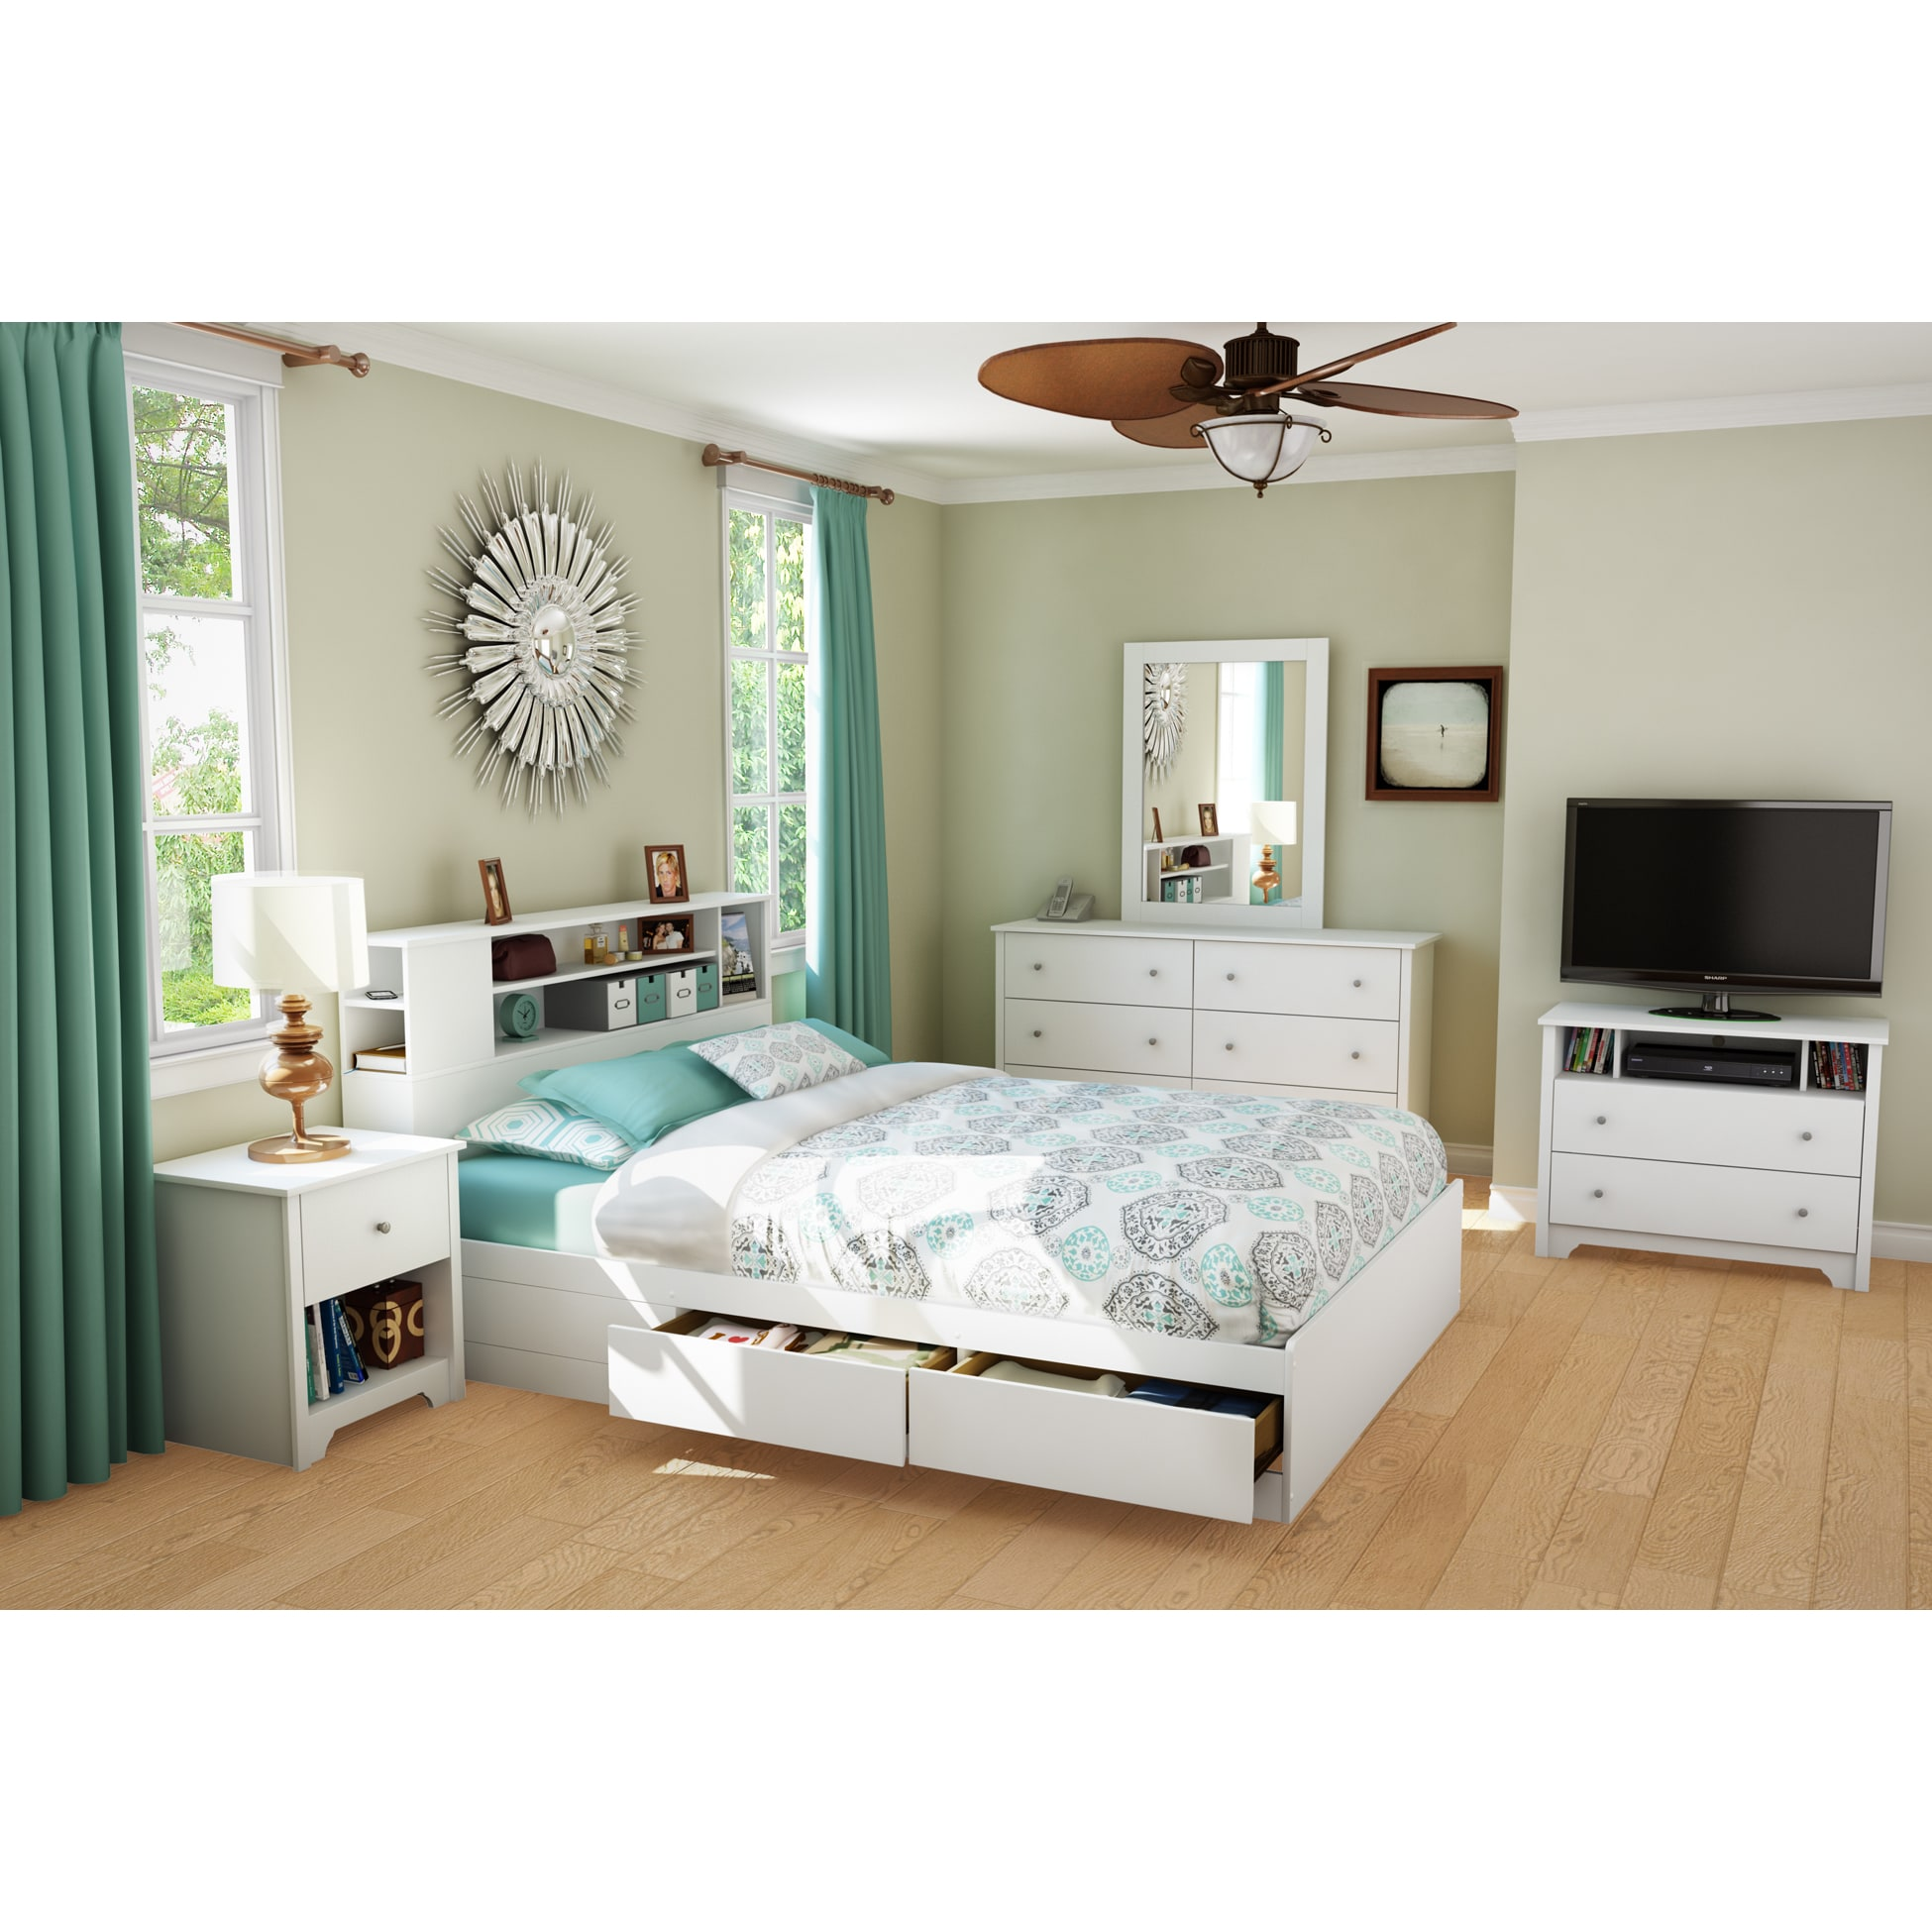 South Shore Vito Queen Mates Bed Frame with Drawers and B...